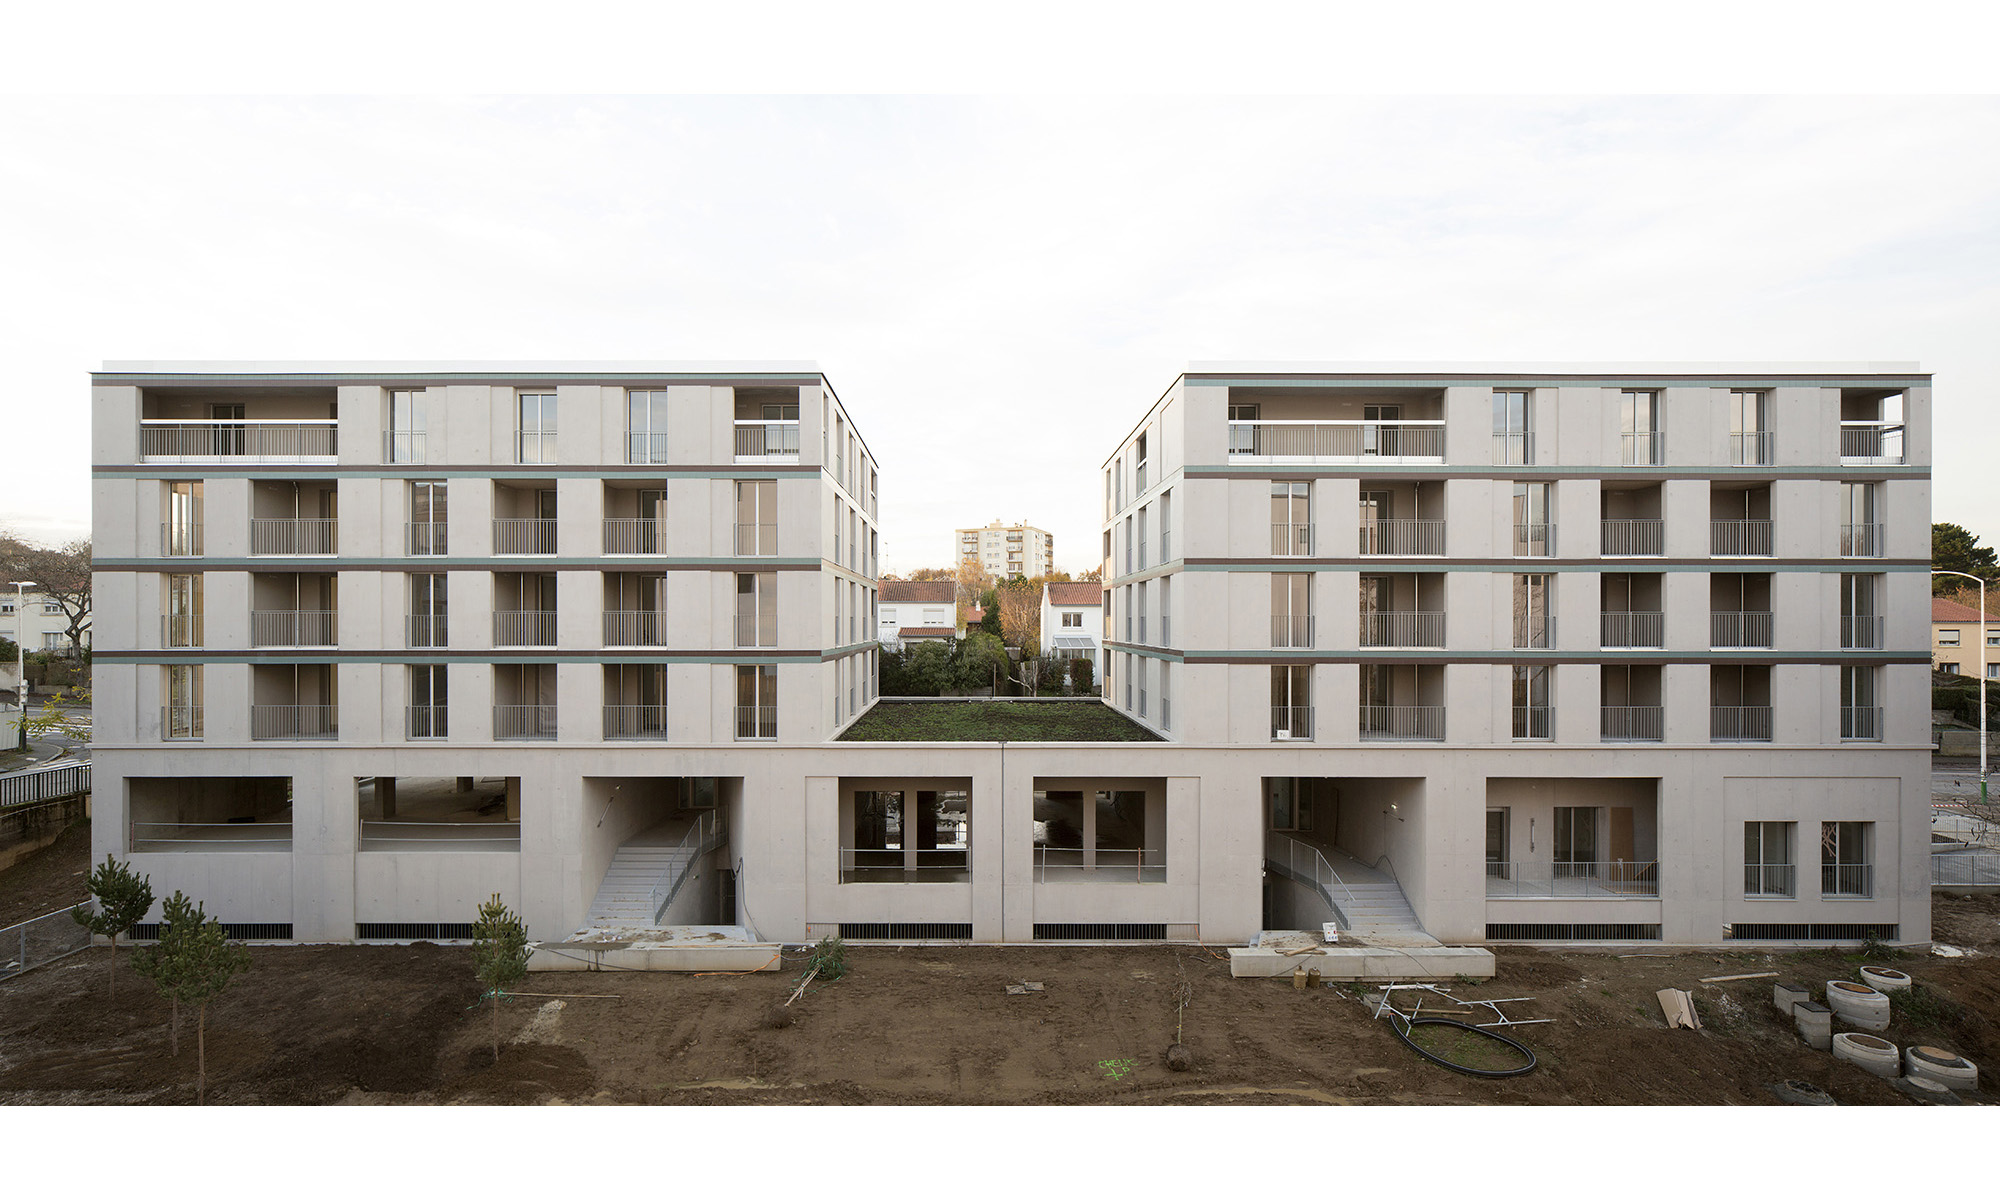 COLLECTIVE HOUSING UNITS - DERVALLIERES - 2